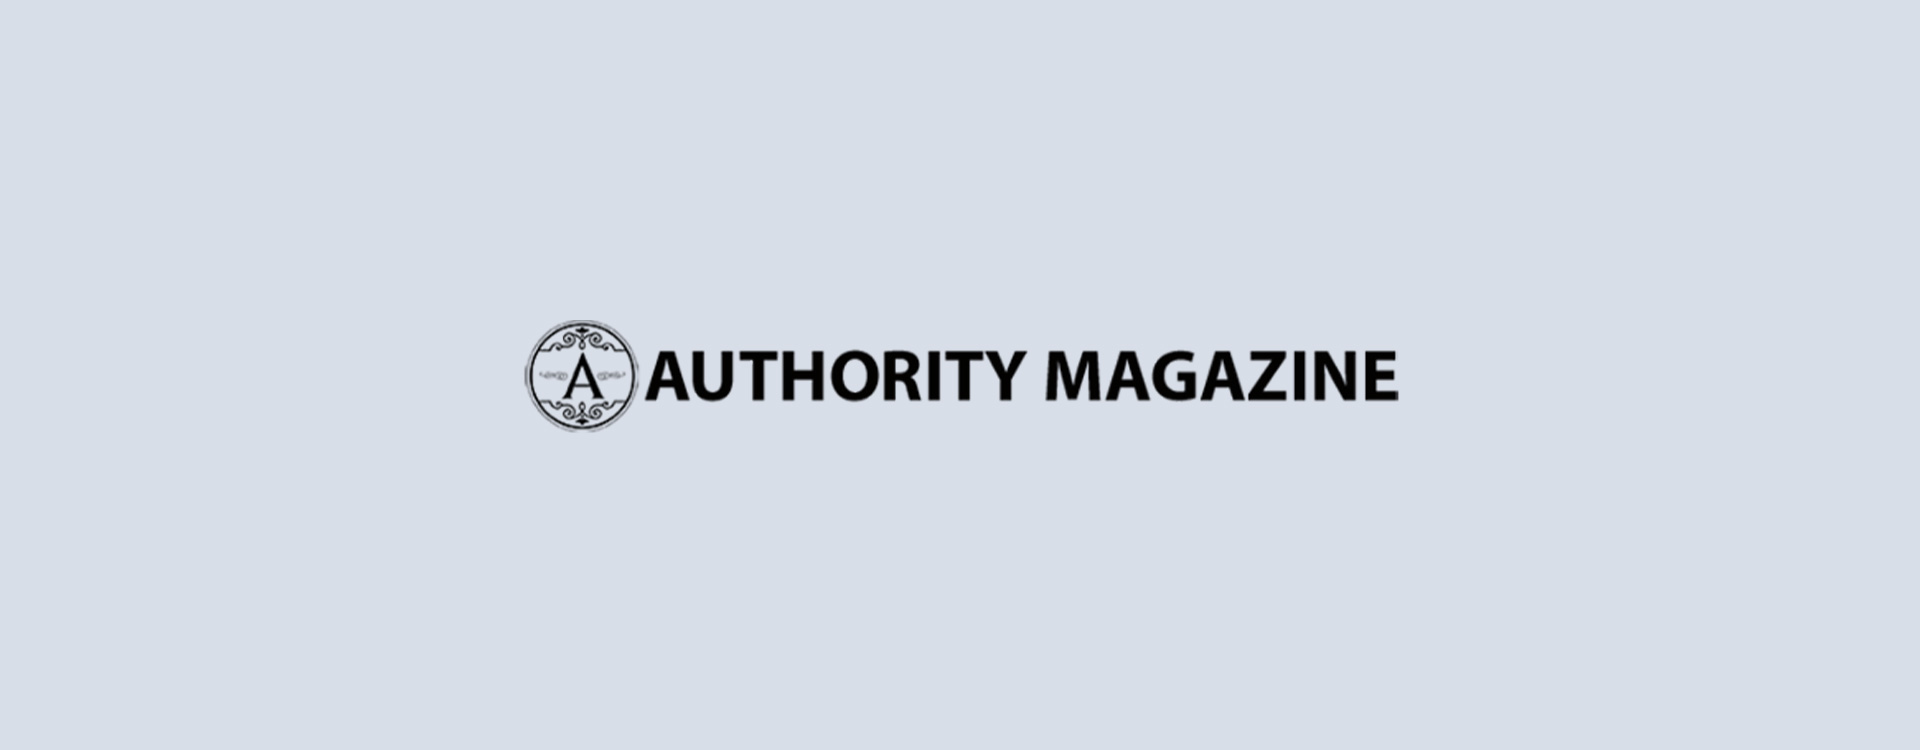 Authority Magazine logo